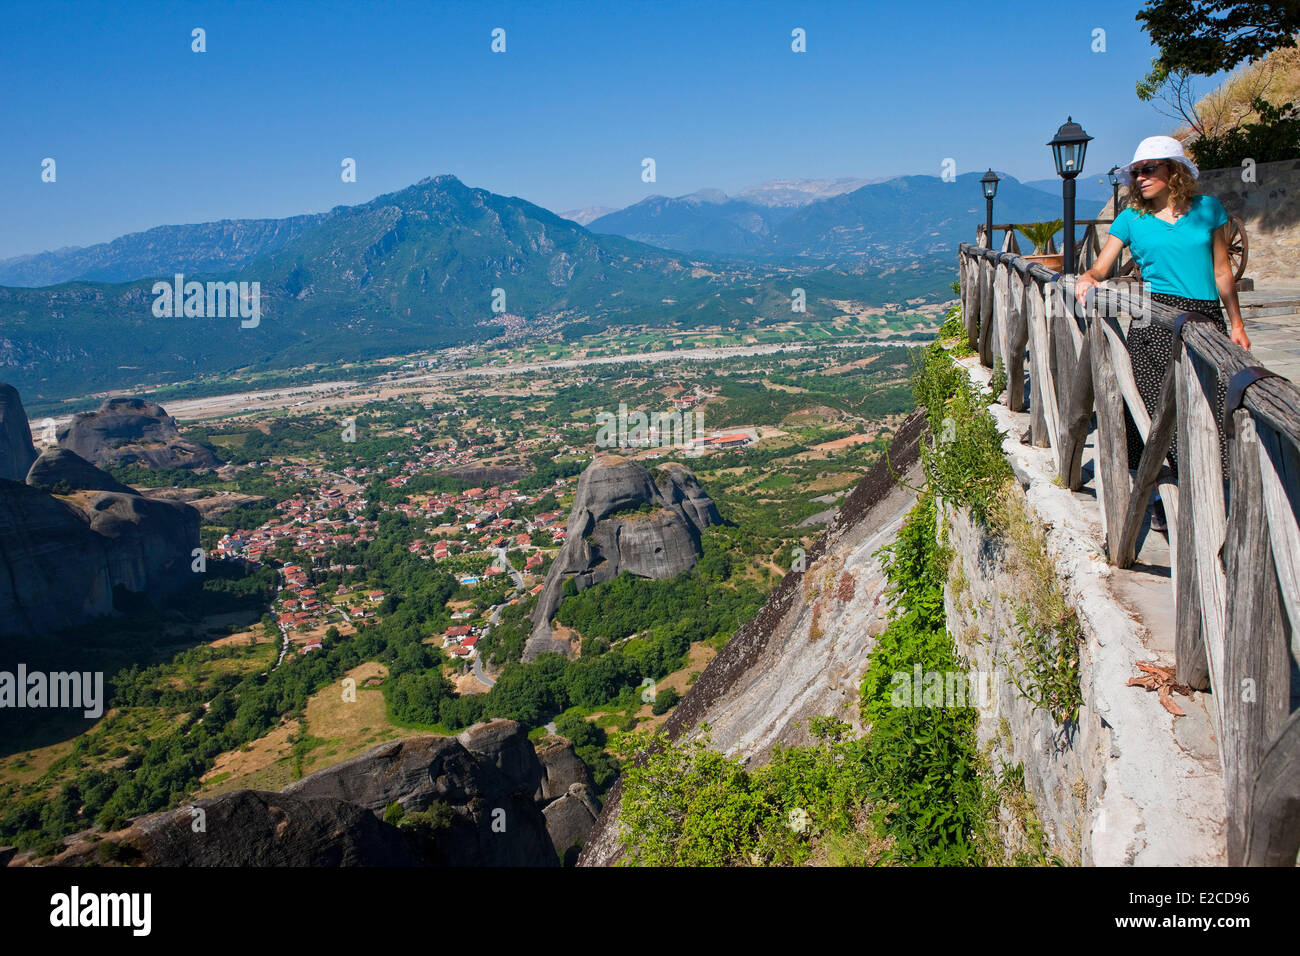 Greece, Thessaly, Meteora monasteries complex, listed as World Heritage by UNESCO, Monastery Varlaam - Stock Image